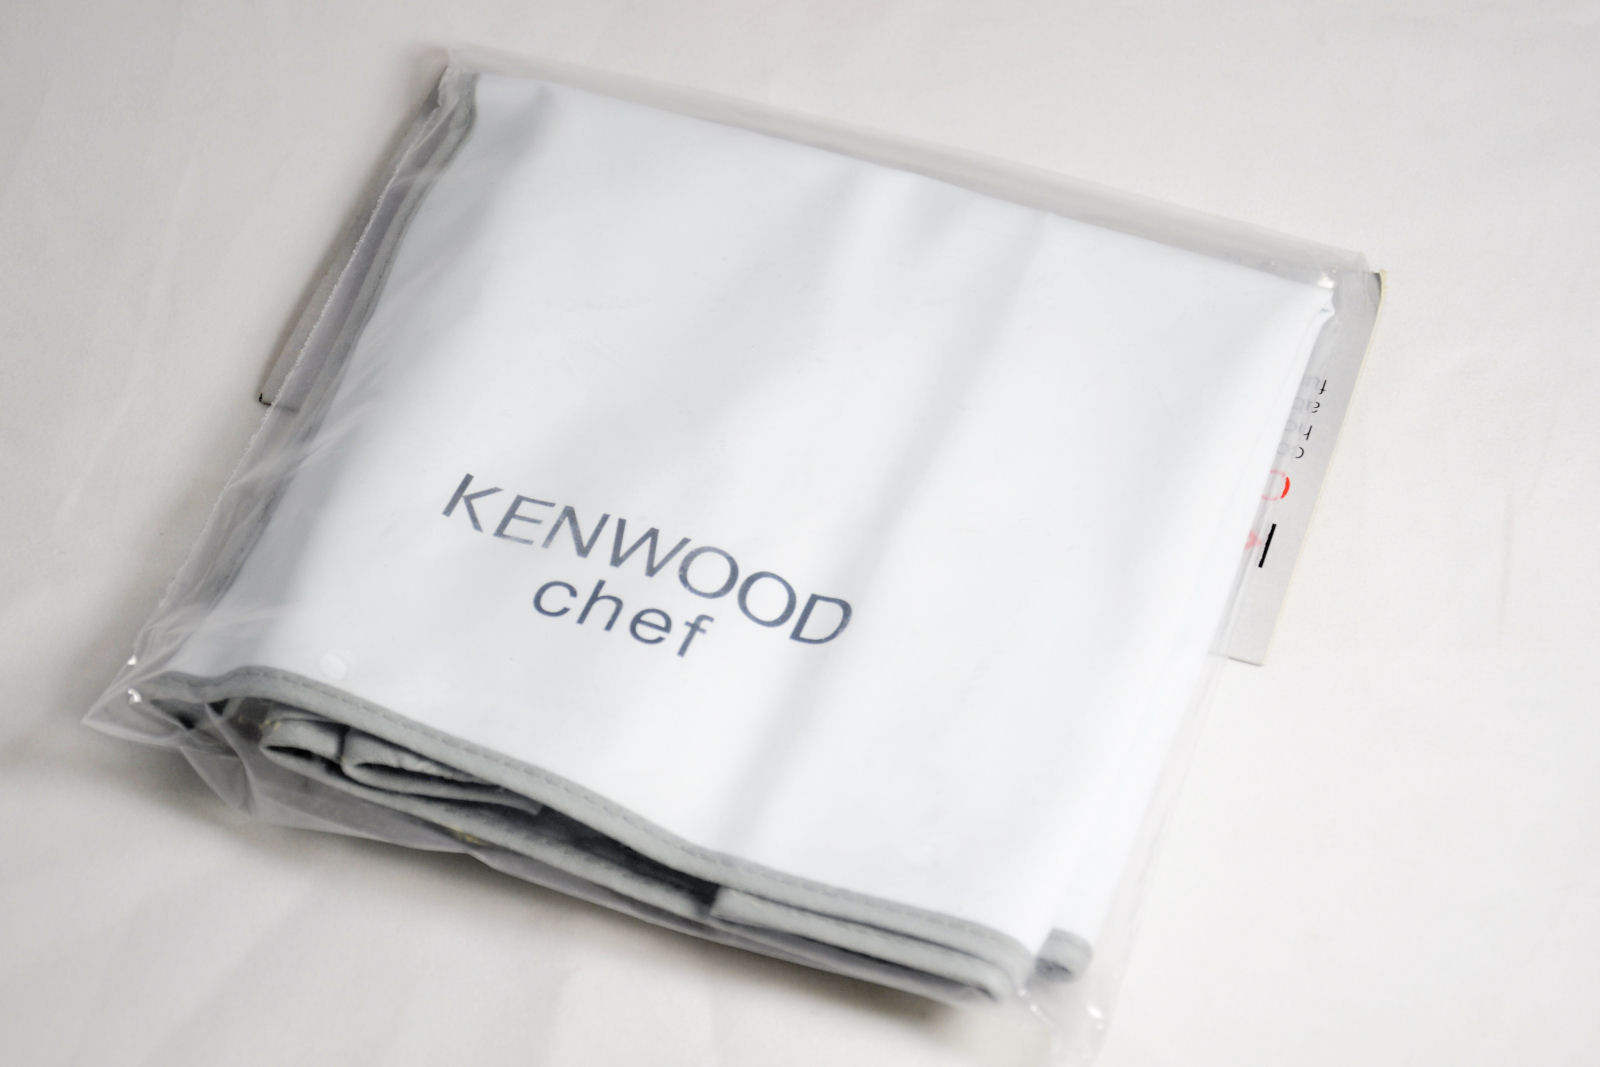 White cover for Kenwood Chef food mixers